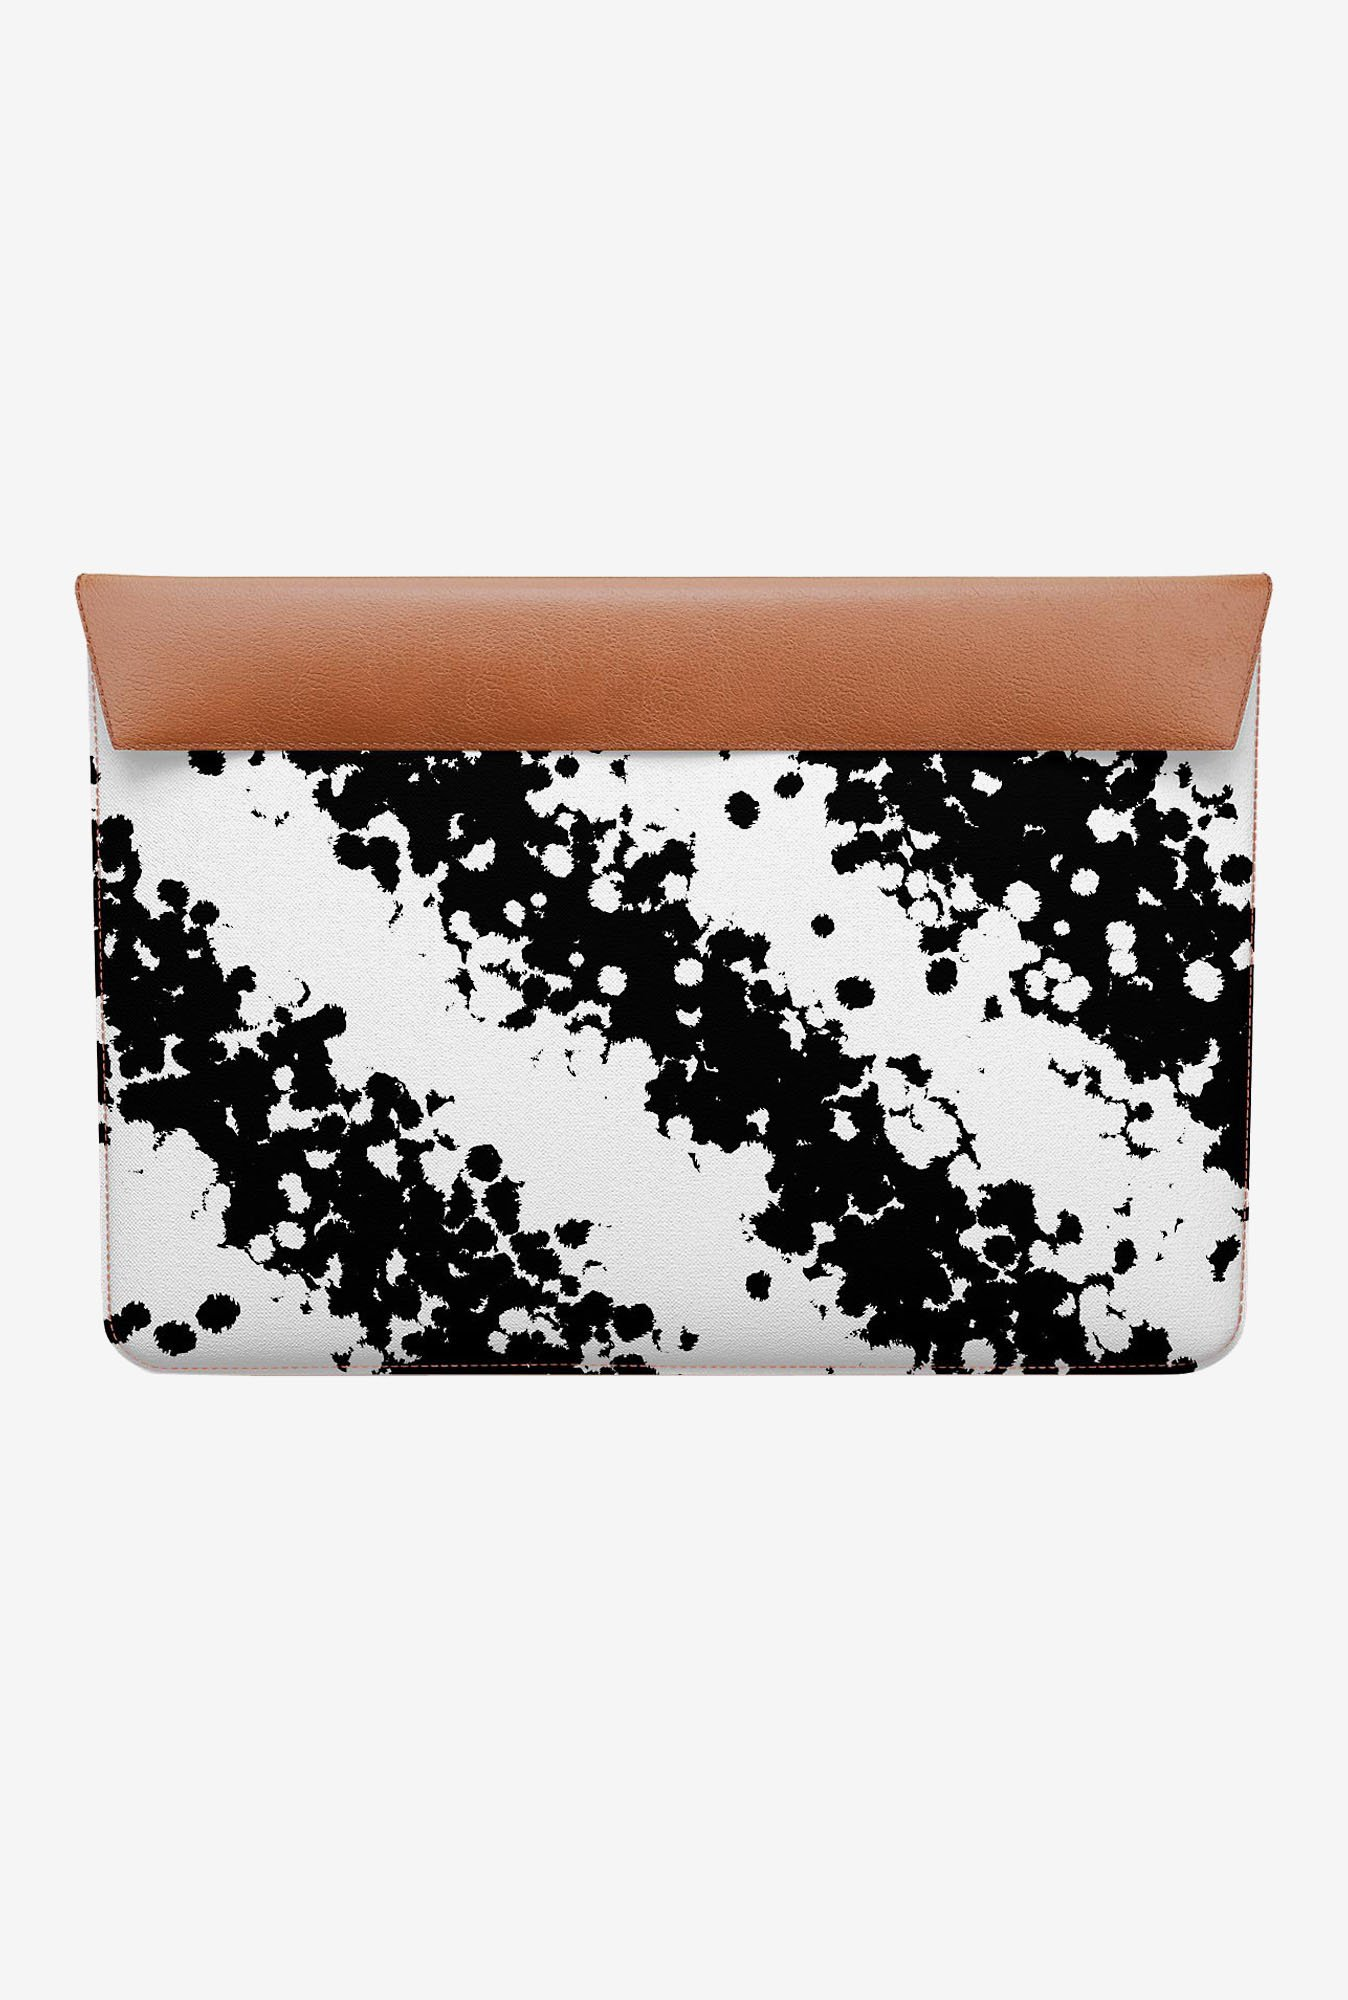 DailyObjects Polka Stripes MacBook Air 13 Envelope Sleeve